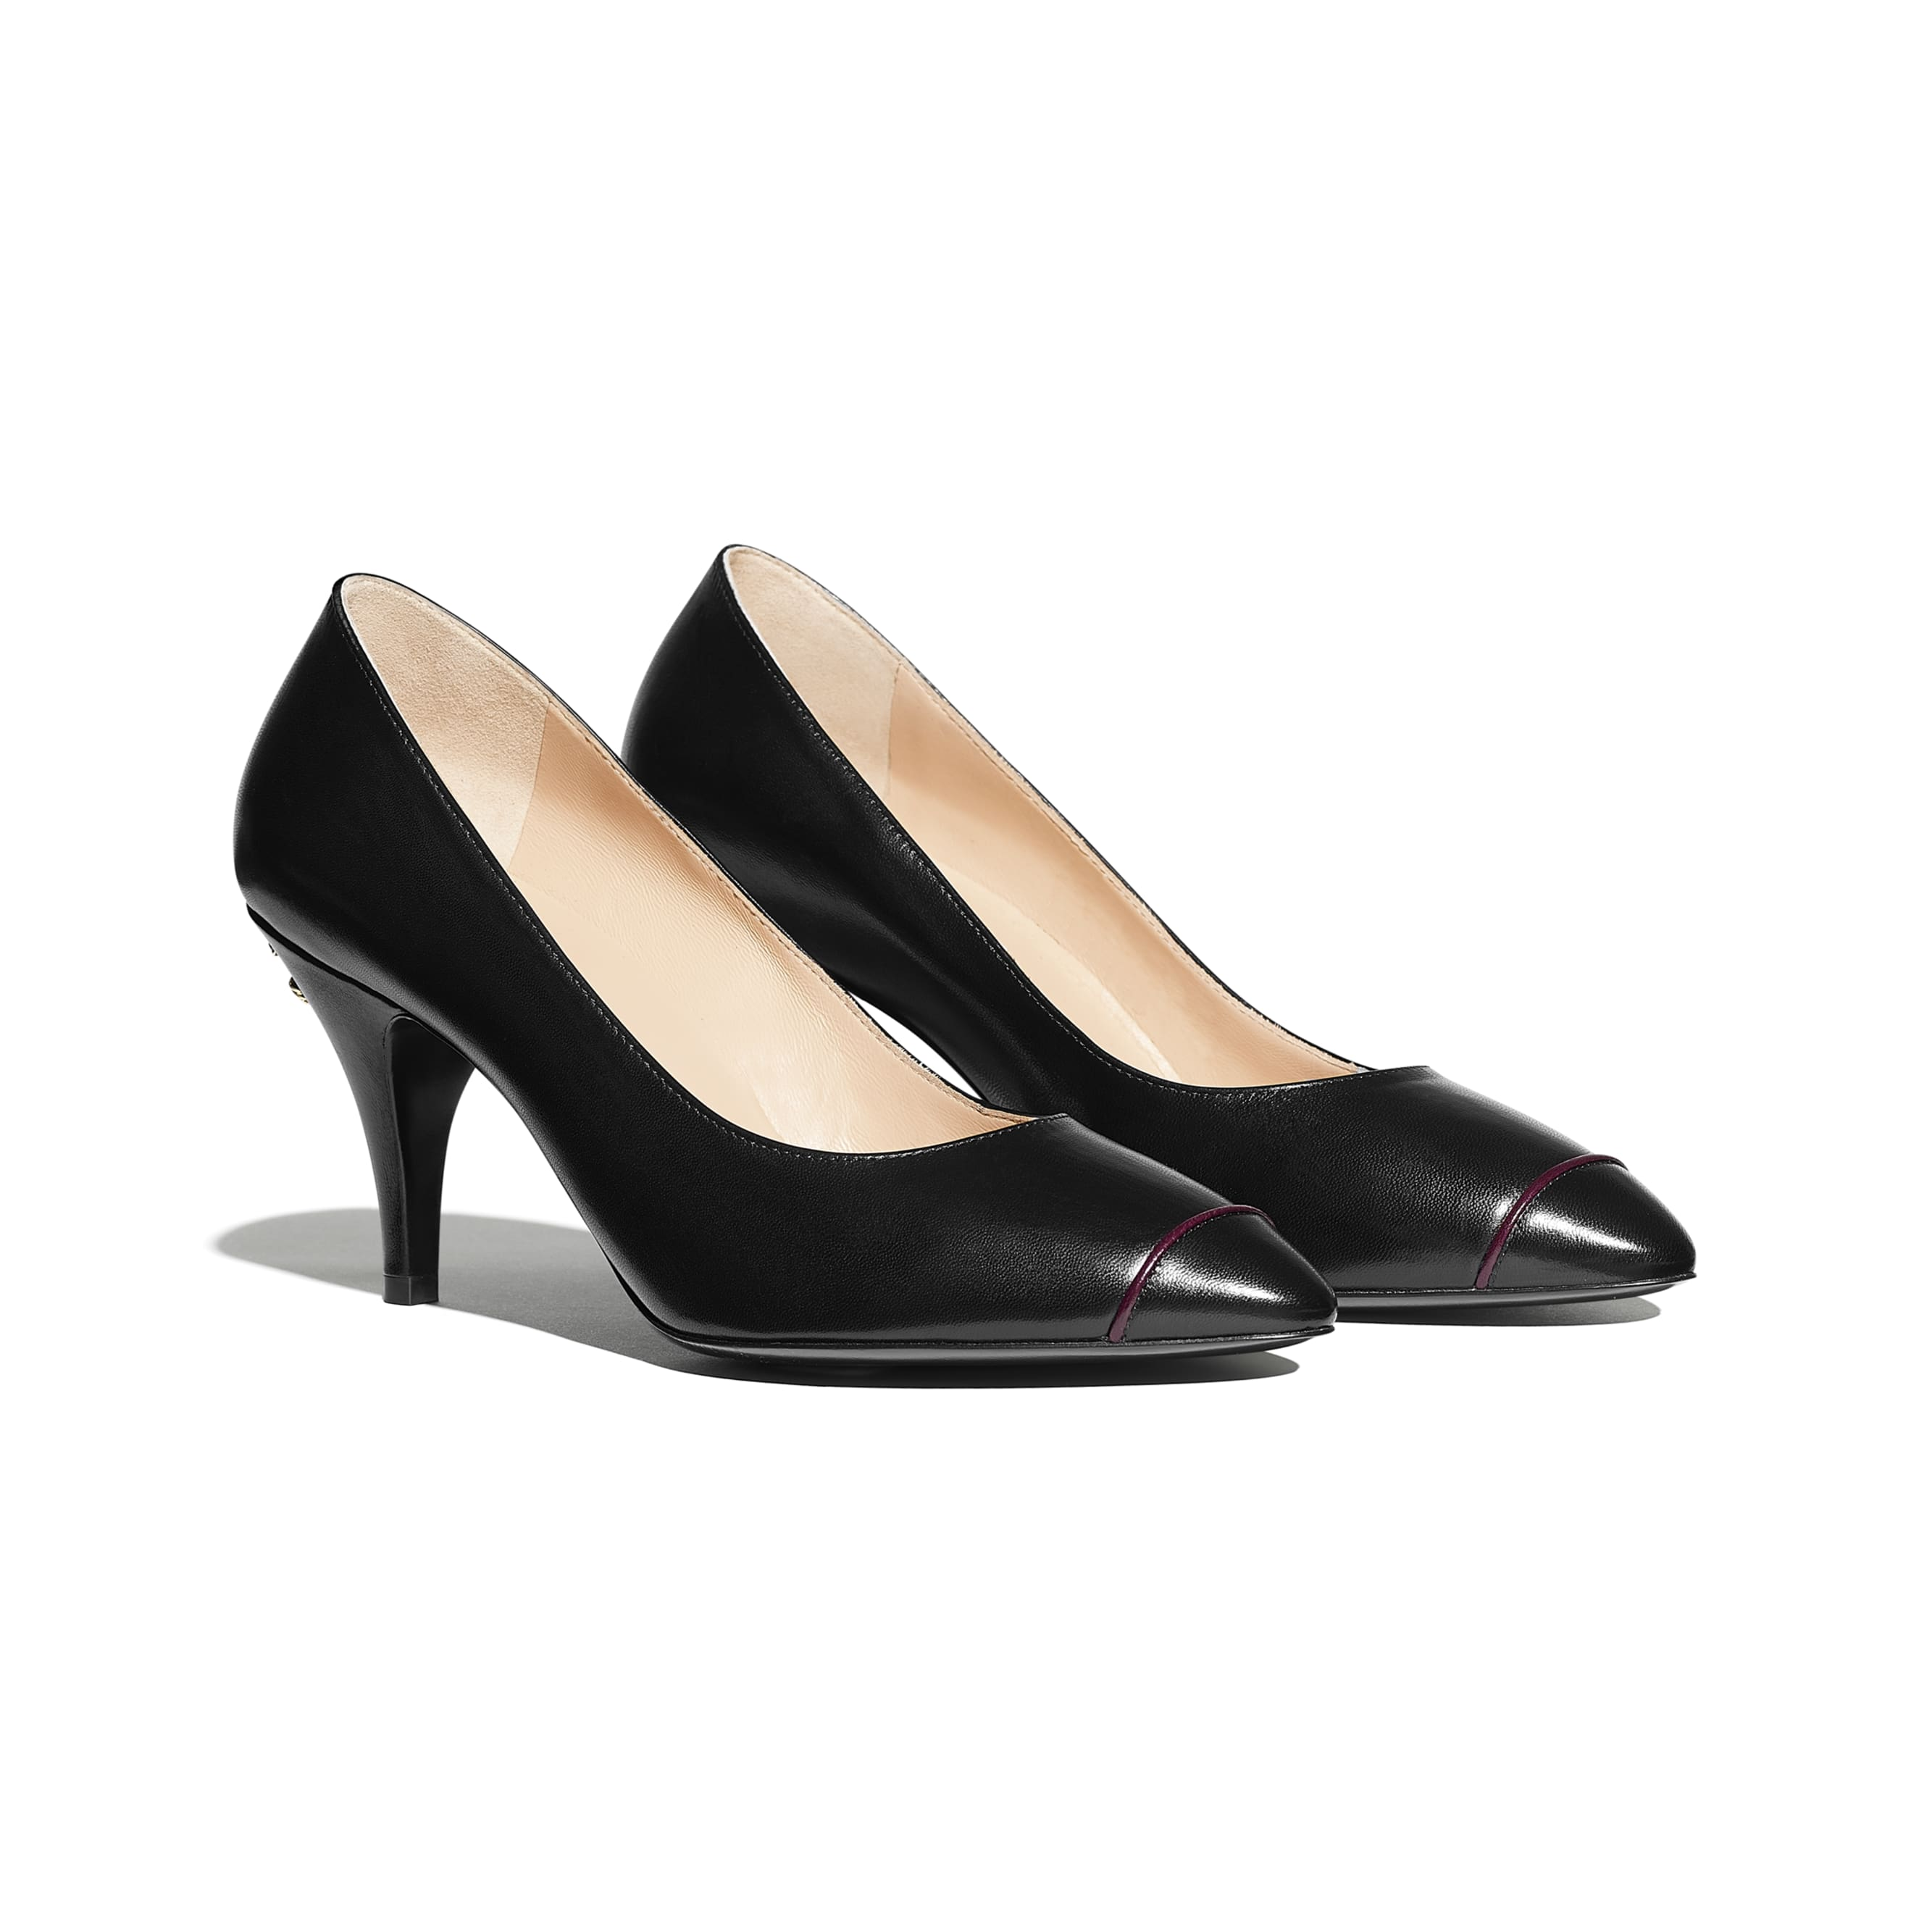 Pumps - Black - Goatskin - CHANEL - Alternative view - see standard sized version